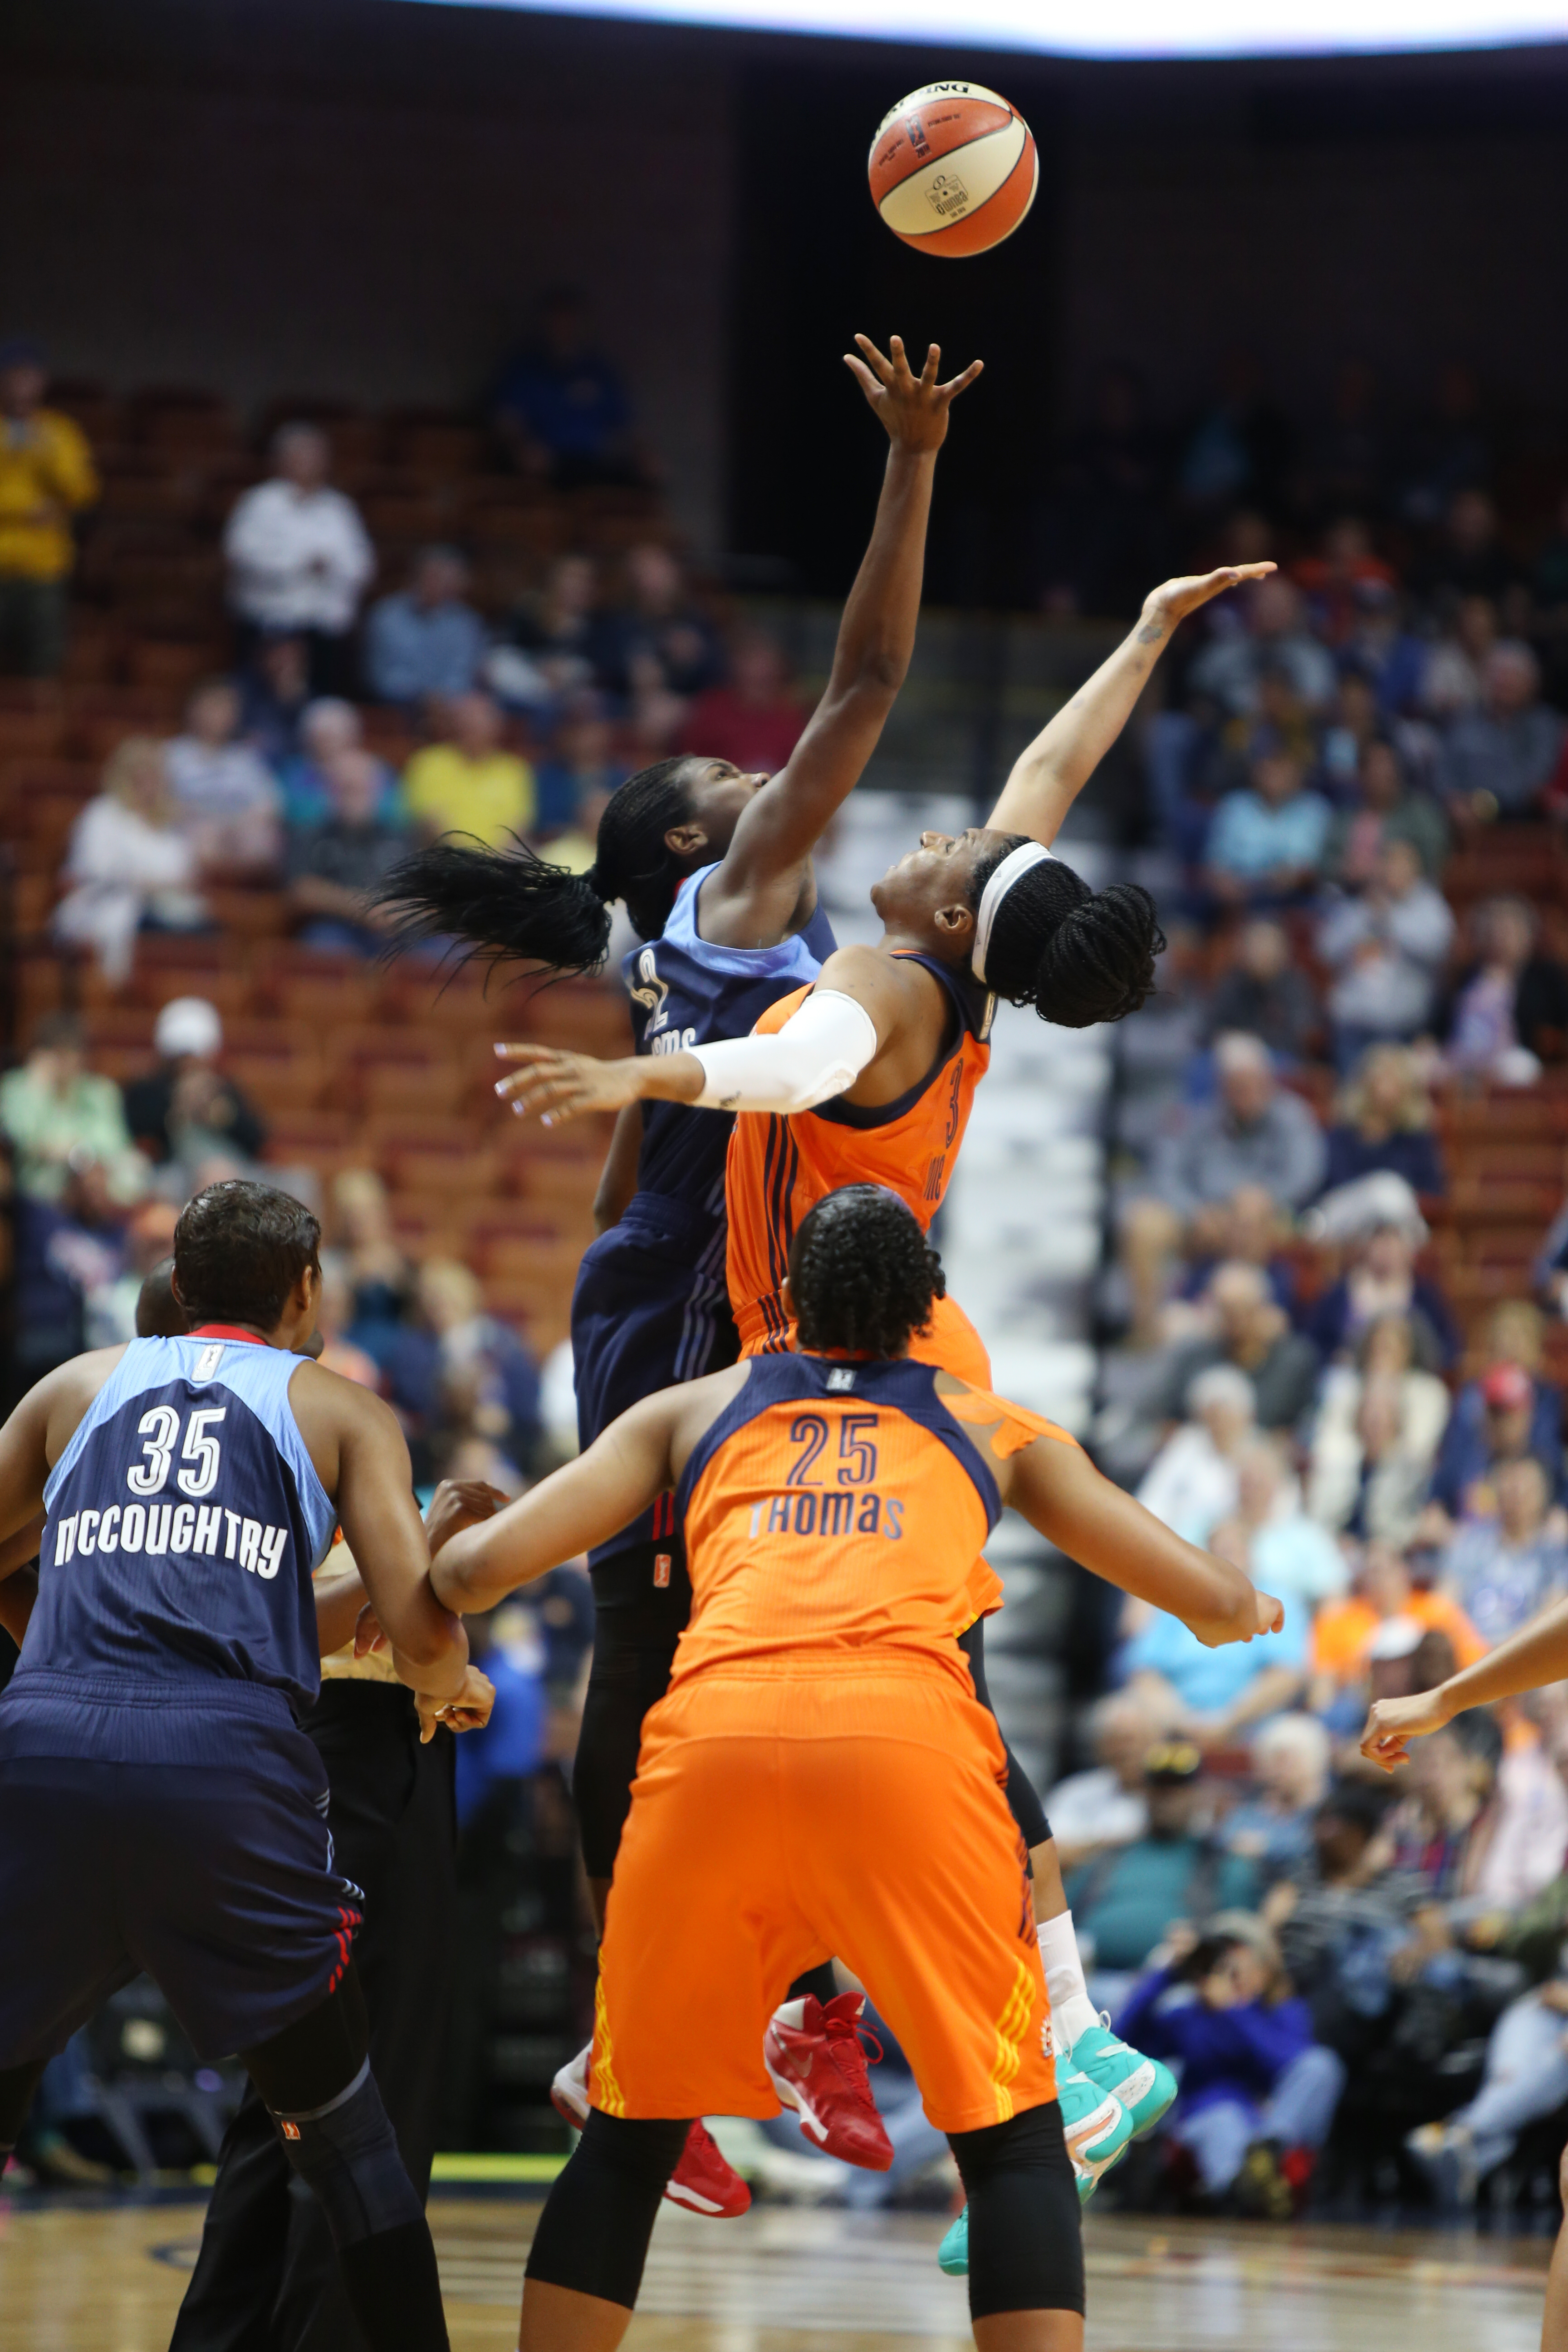 UNCASVILLE, CT - JUNE 3: The opening tip off between the Atlanta Dream and the Connecticut Sun on June 3, 2016 at Mohegan Sun Arena in Uncasville, CT. NOTE TO USER: User expressly acknowledges and agrees that, by downloading and or using this Photograph, user is consenting to the terms and conditions of the Getty Images License Agreement. Mandatory Copyright Notice: Copyright 2016 NBAE (Photo by Chris Marion/NBAE via Getty Images)